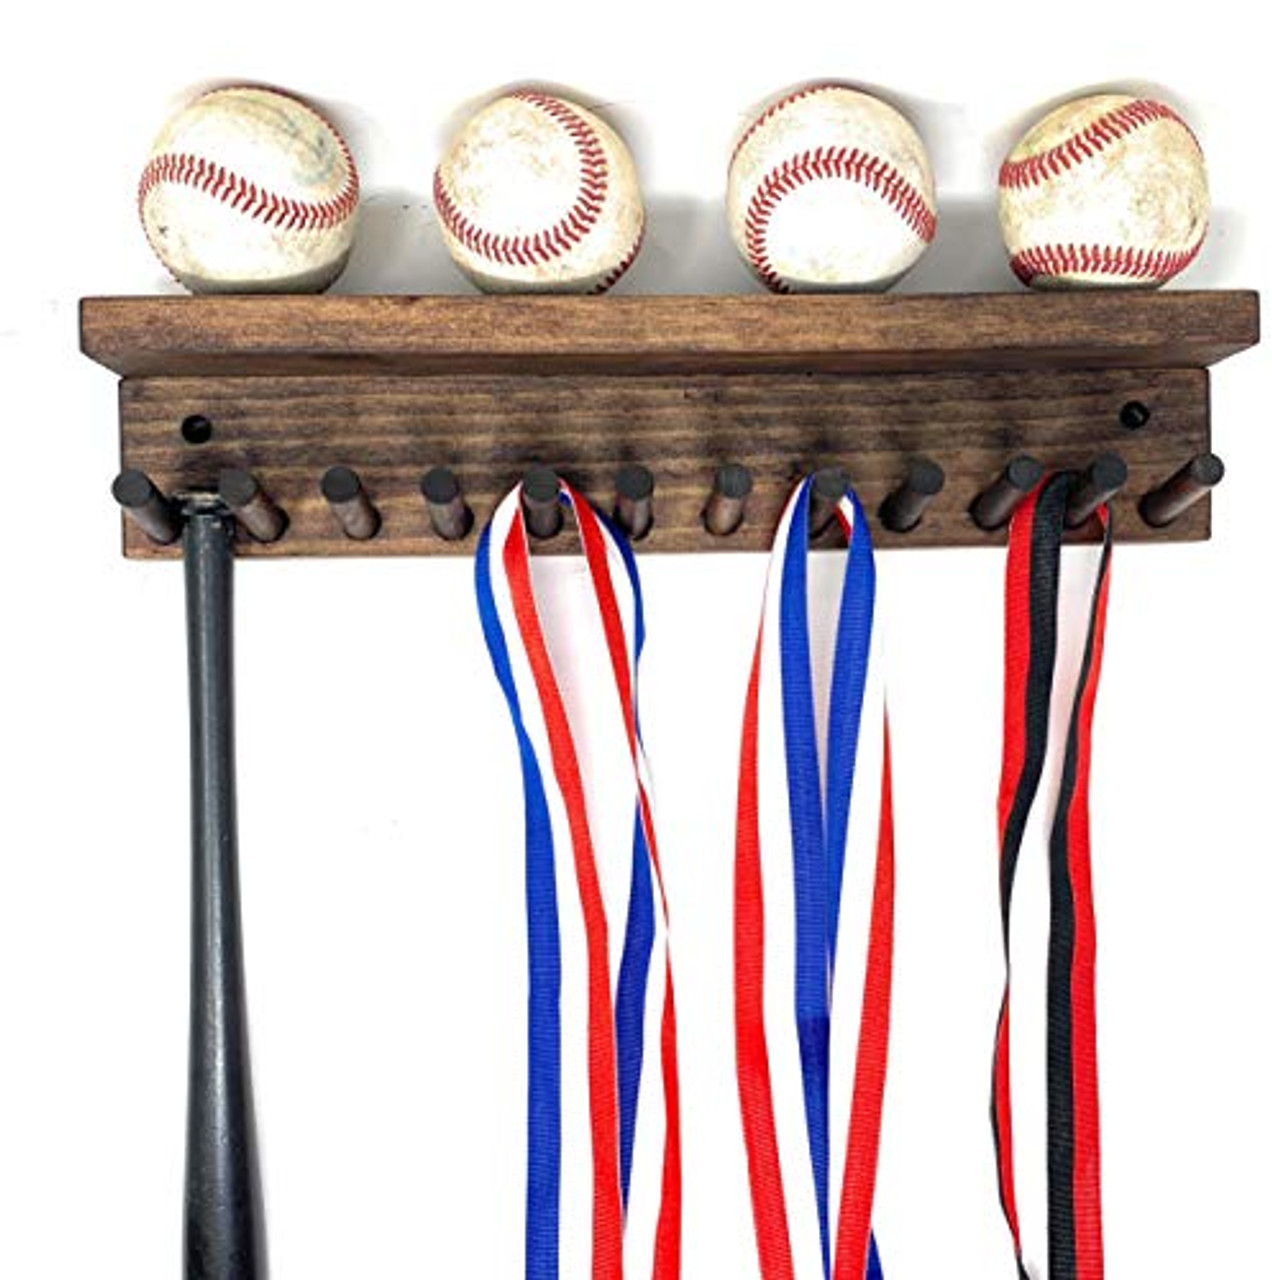 Award Medal Display Rack And Trophy Shelf 12 Medals Ball Holder Made in the USA